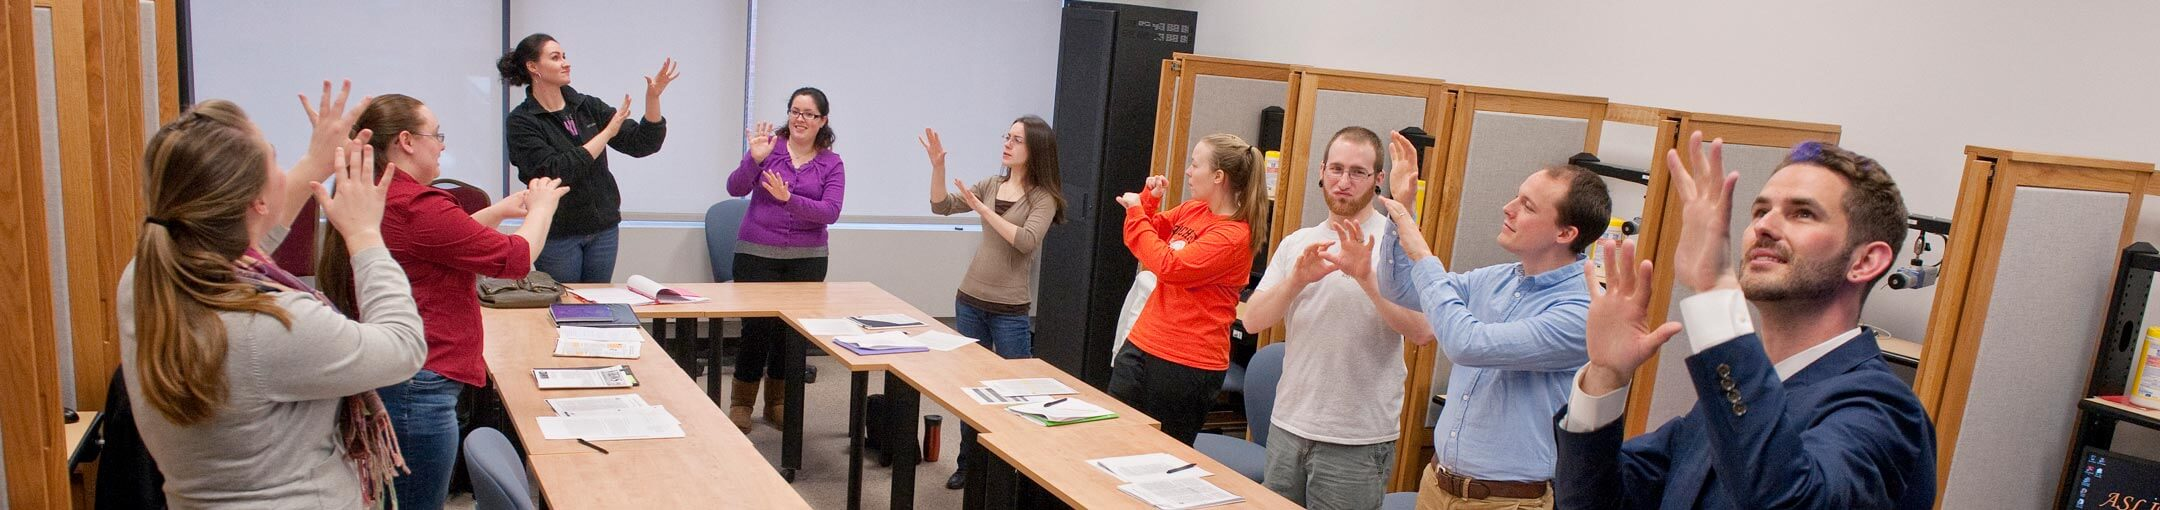 Photo of students in classroom all recreating the sign demonstrated by the instructor